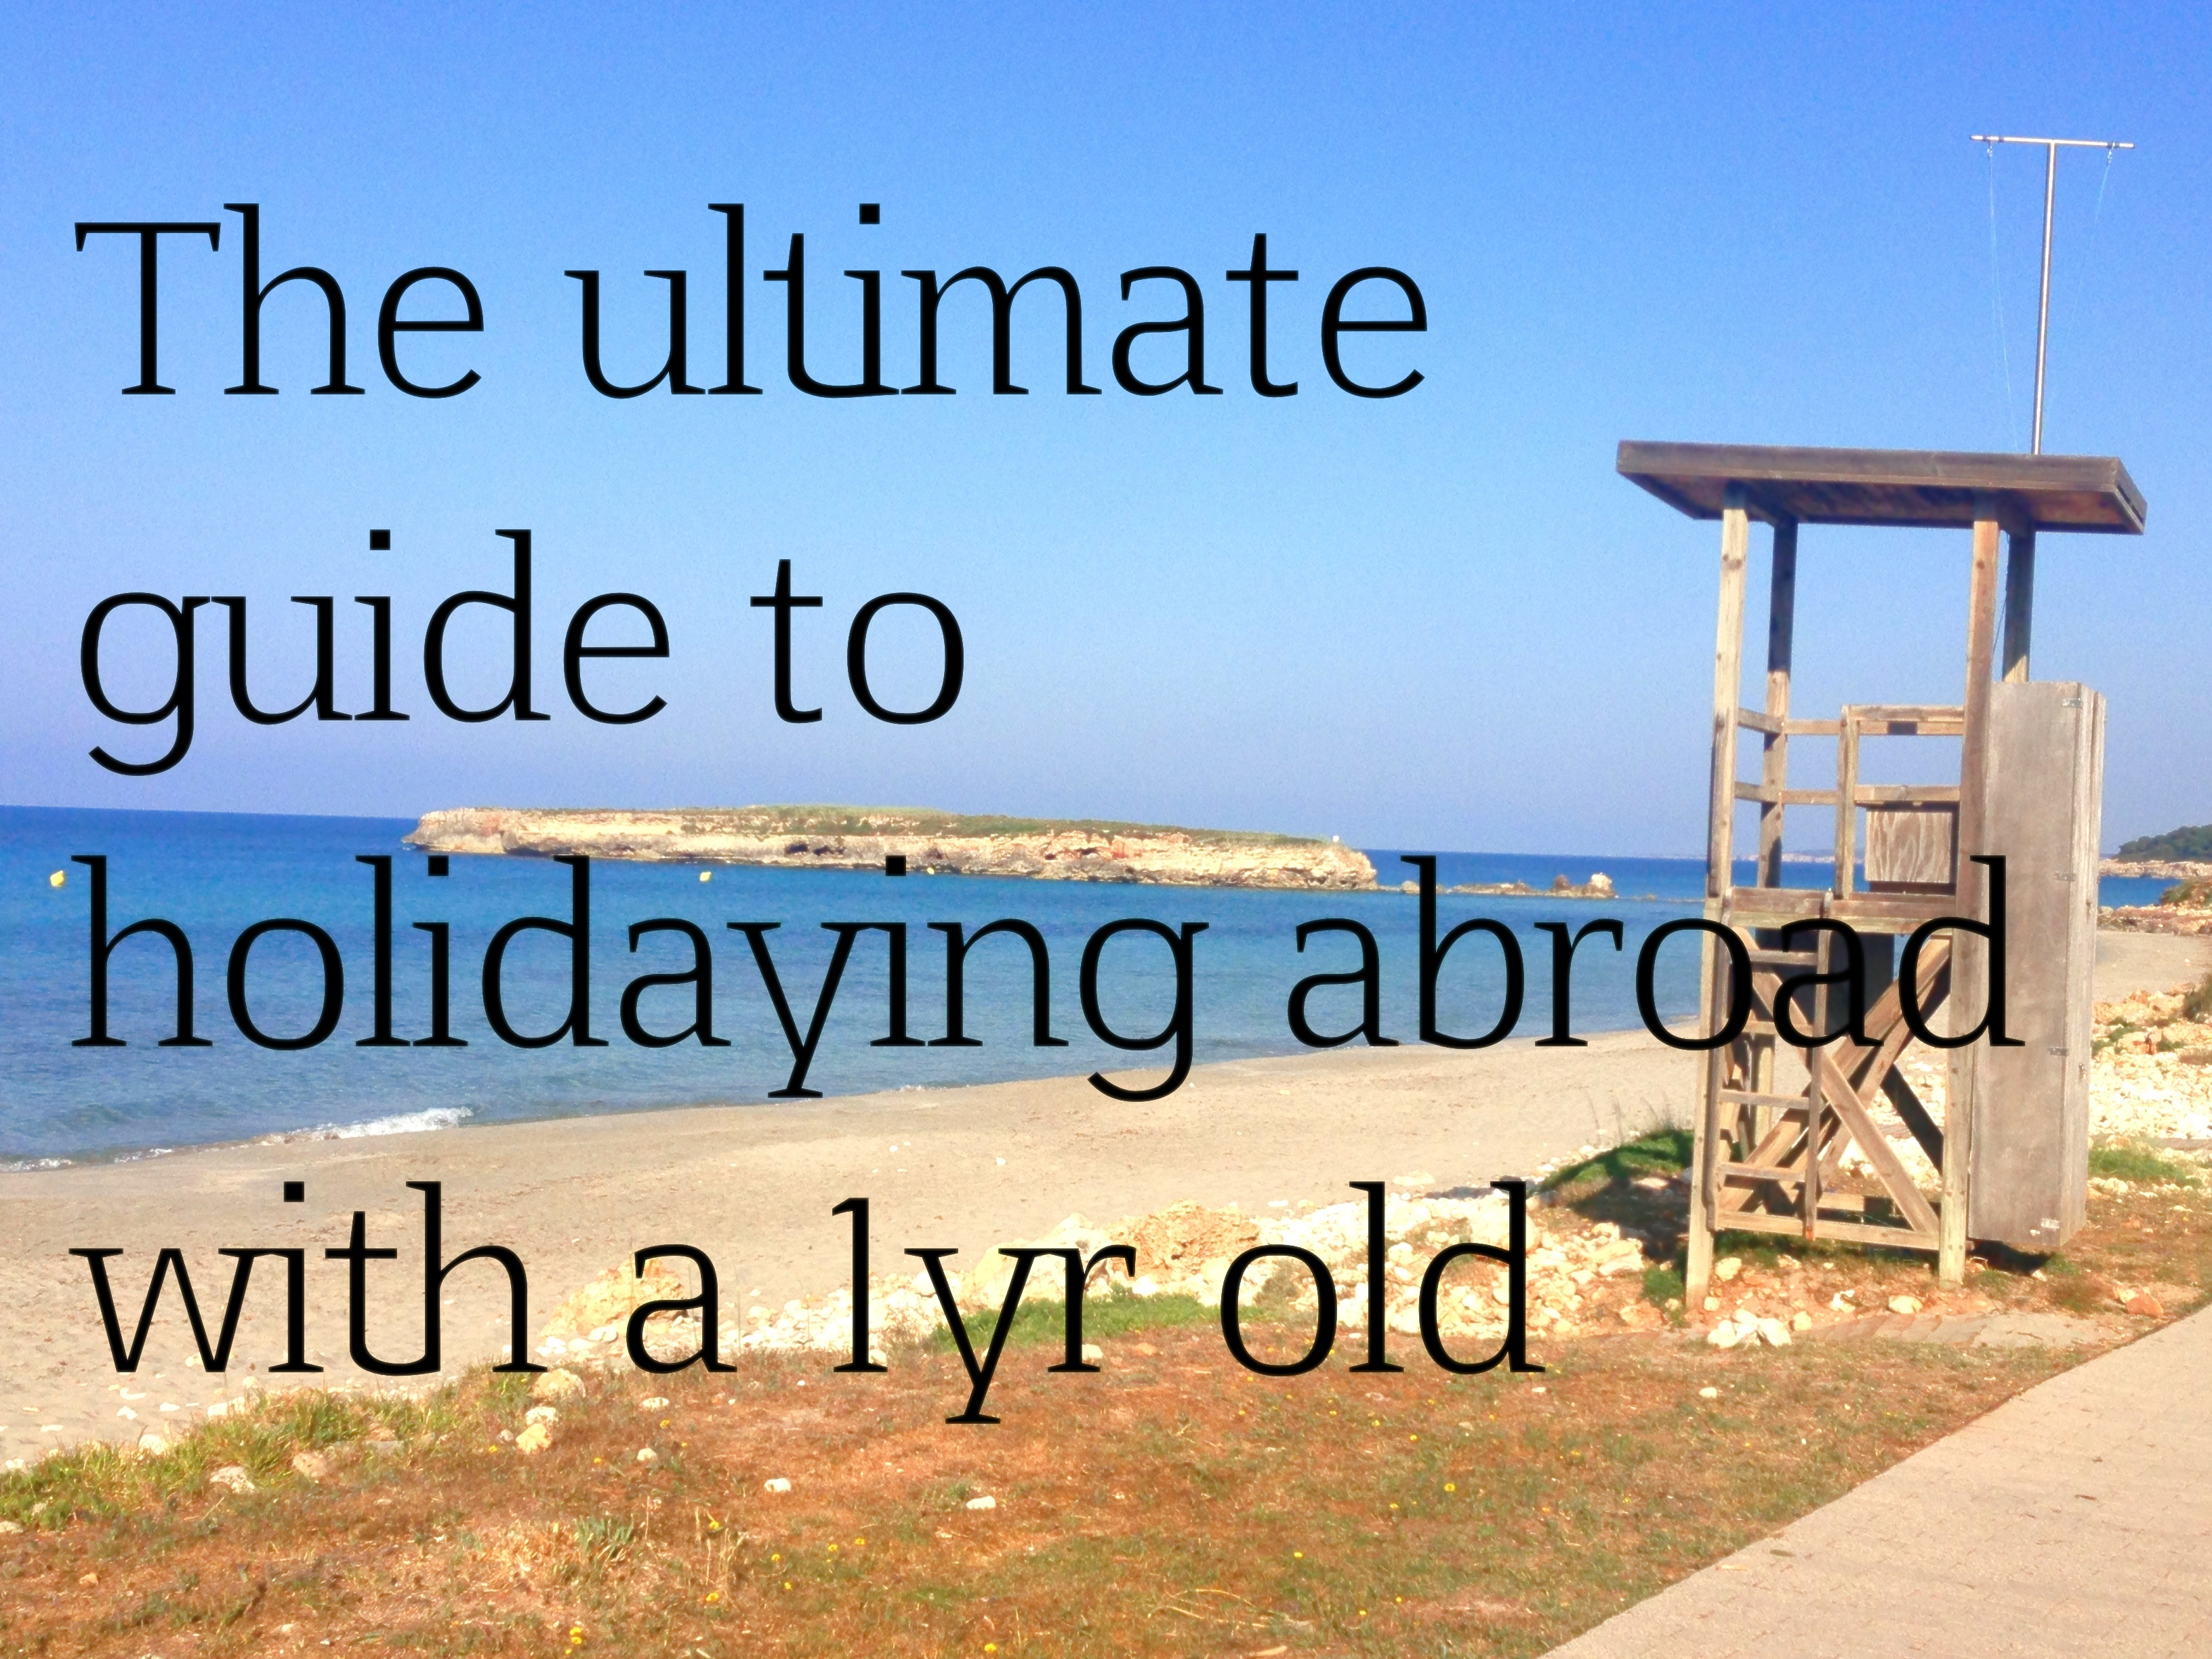 Taking a one year old baby abroad – including flying – tips and